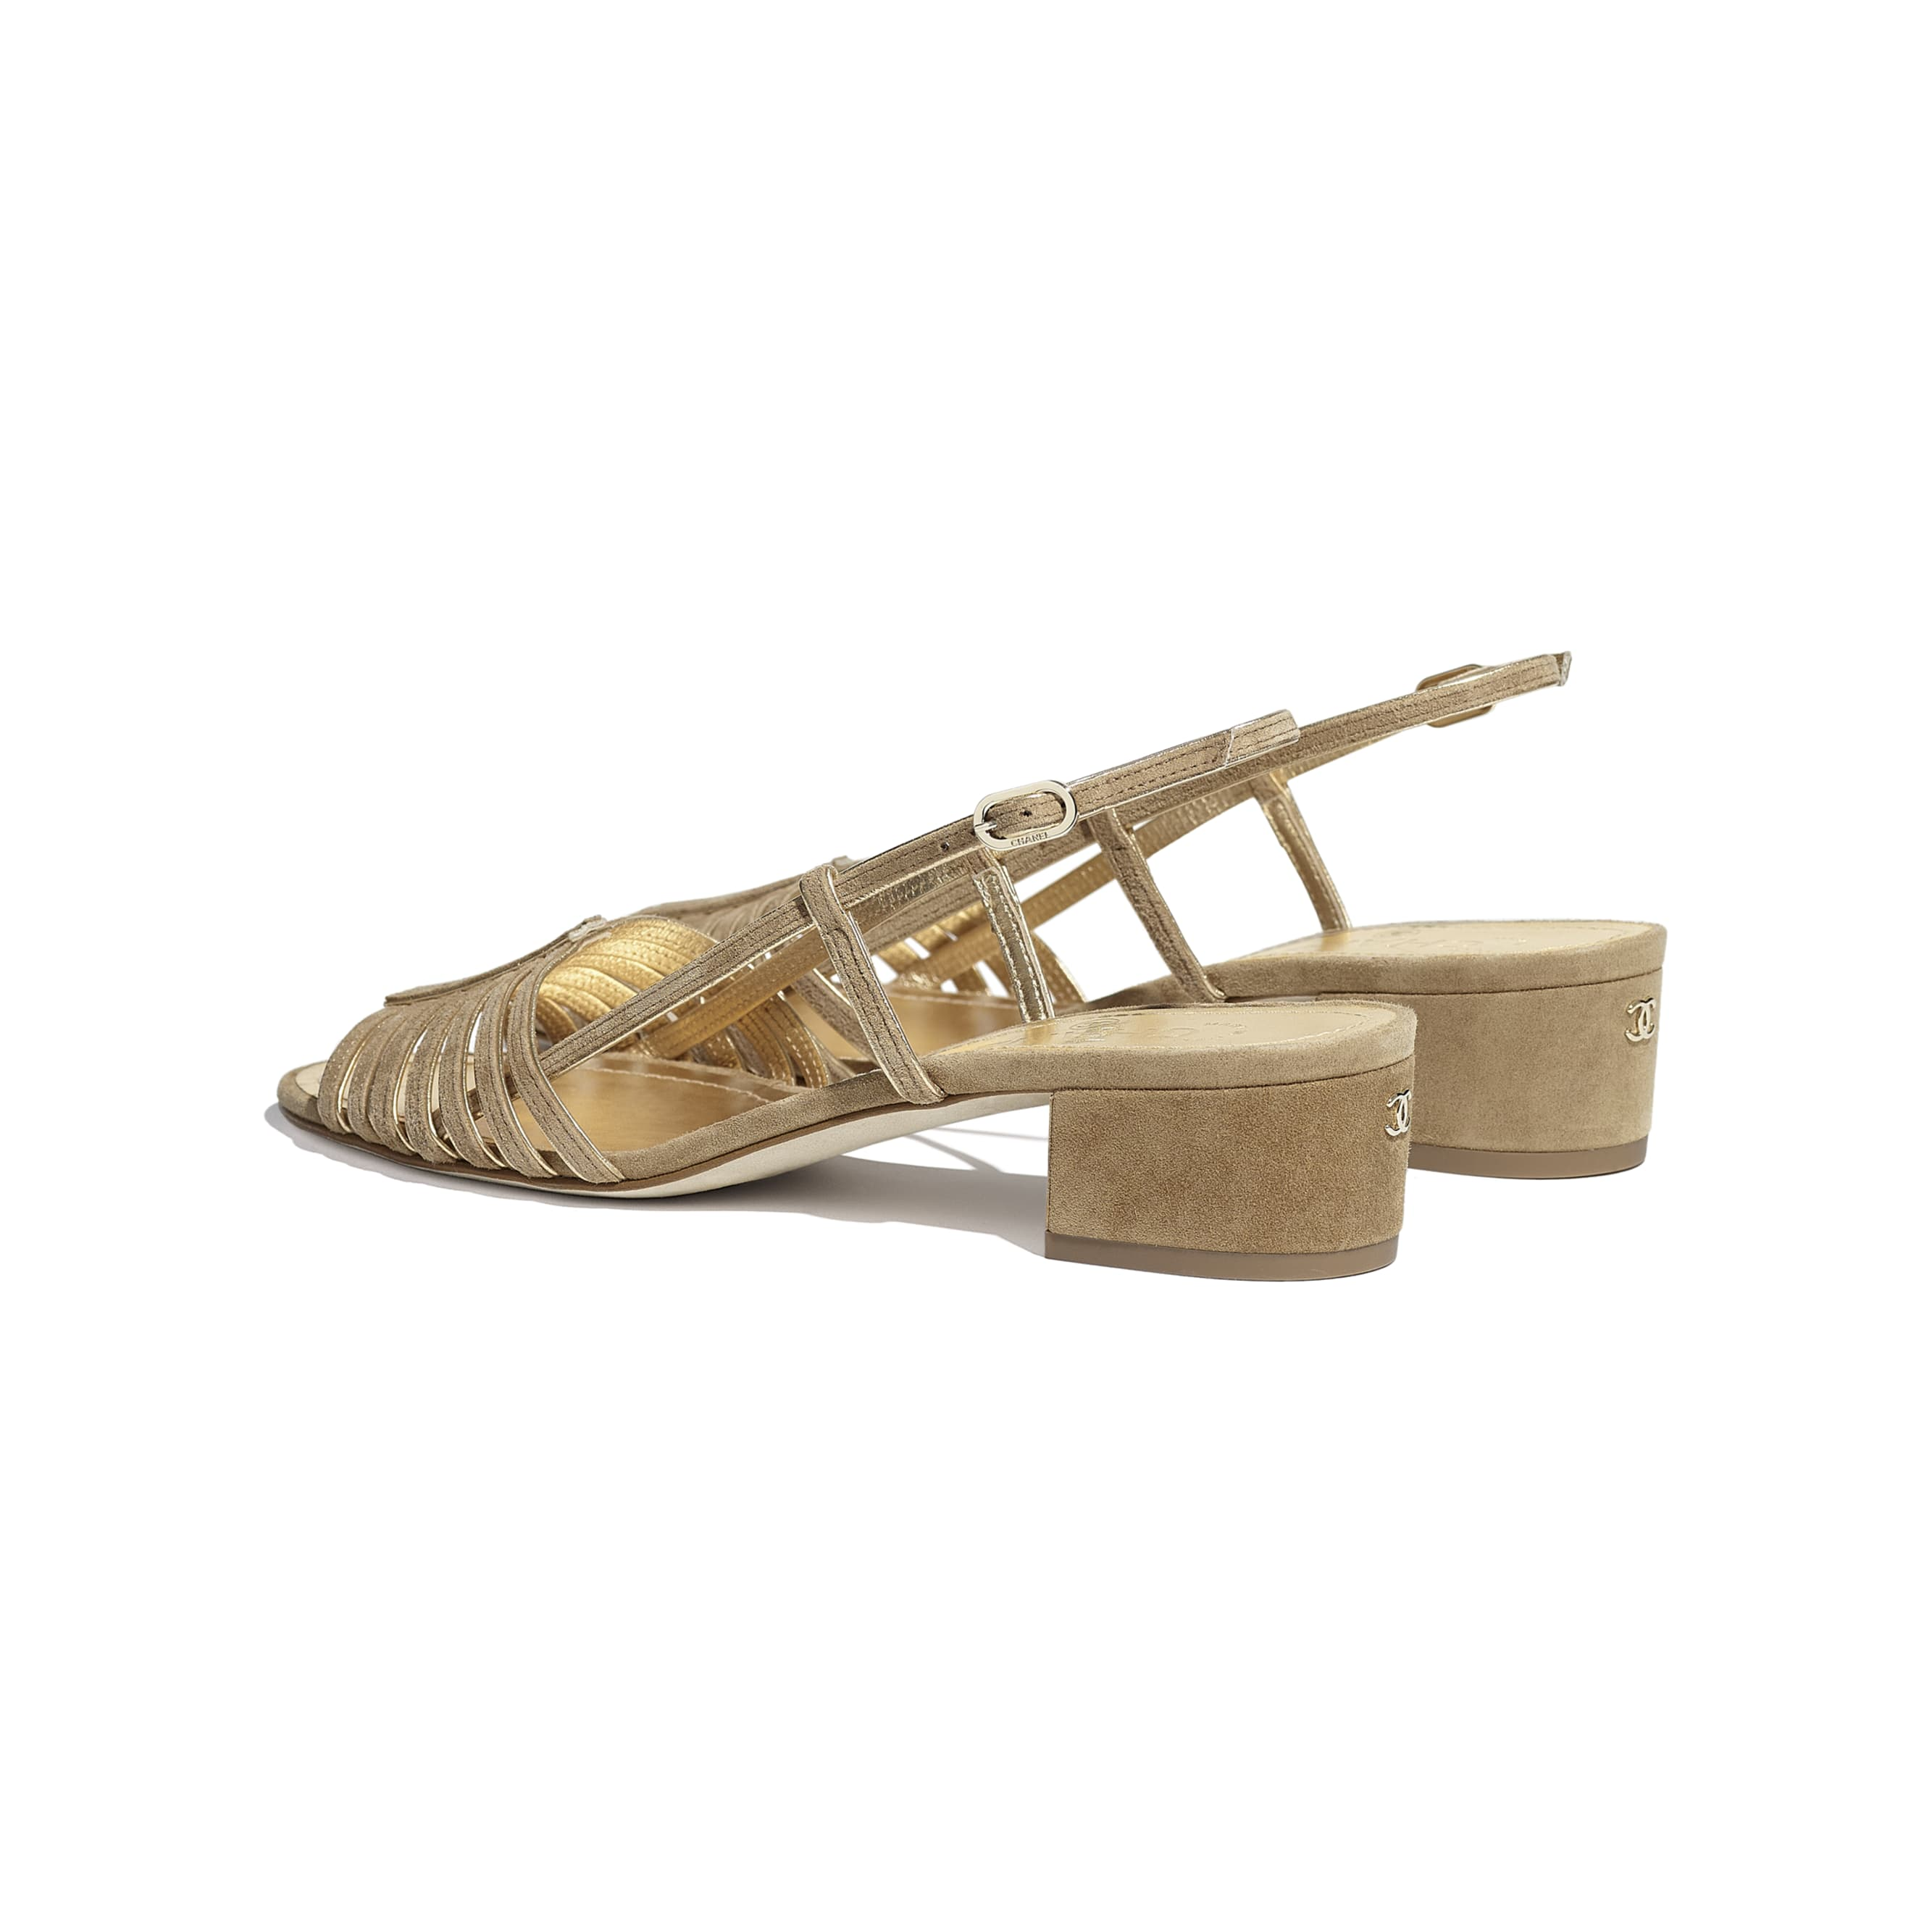 Sandals - Beige & Gold - Suede Kidskin - CHANEL - Other view - see standard sized version